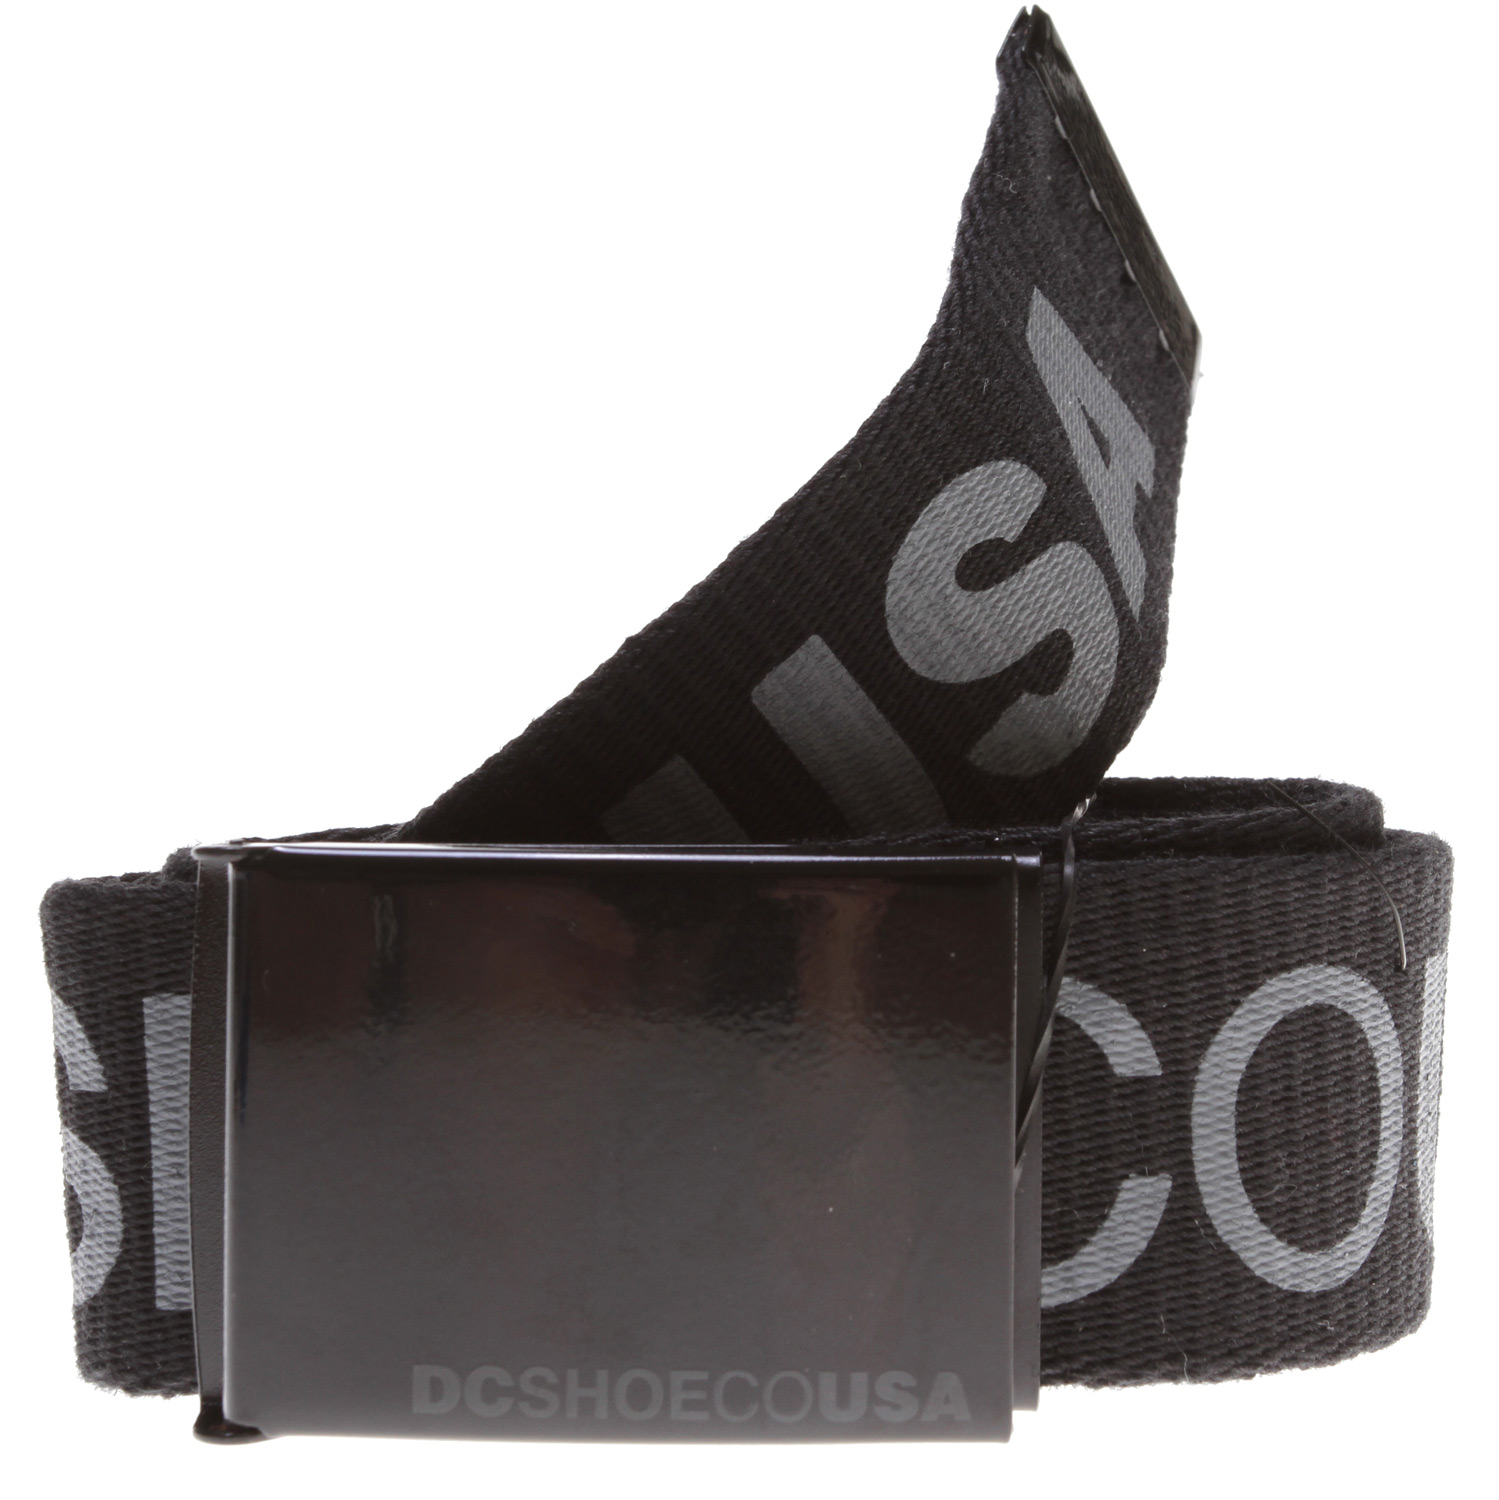 Key Features of the DC Chinook 5 Belt: Reversible scout belt with larger DC script print and metal buckle with screen printed script branding 100% Polyester - $15.00